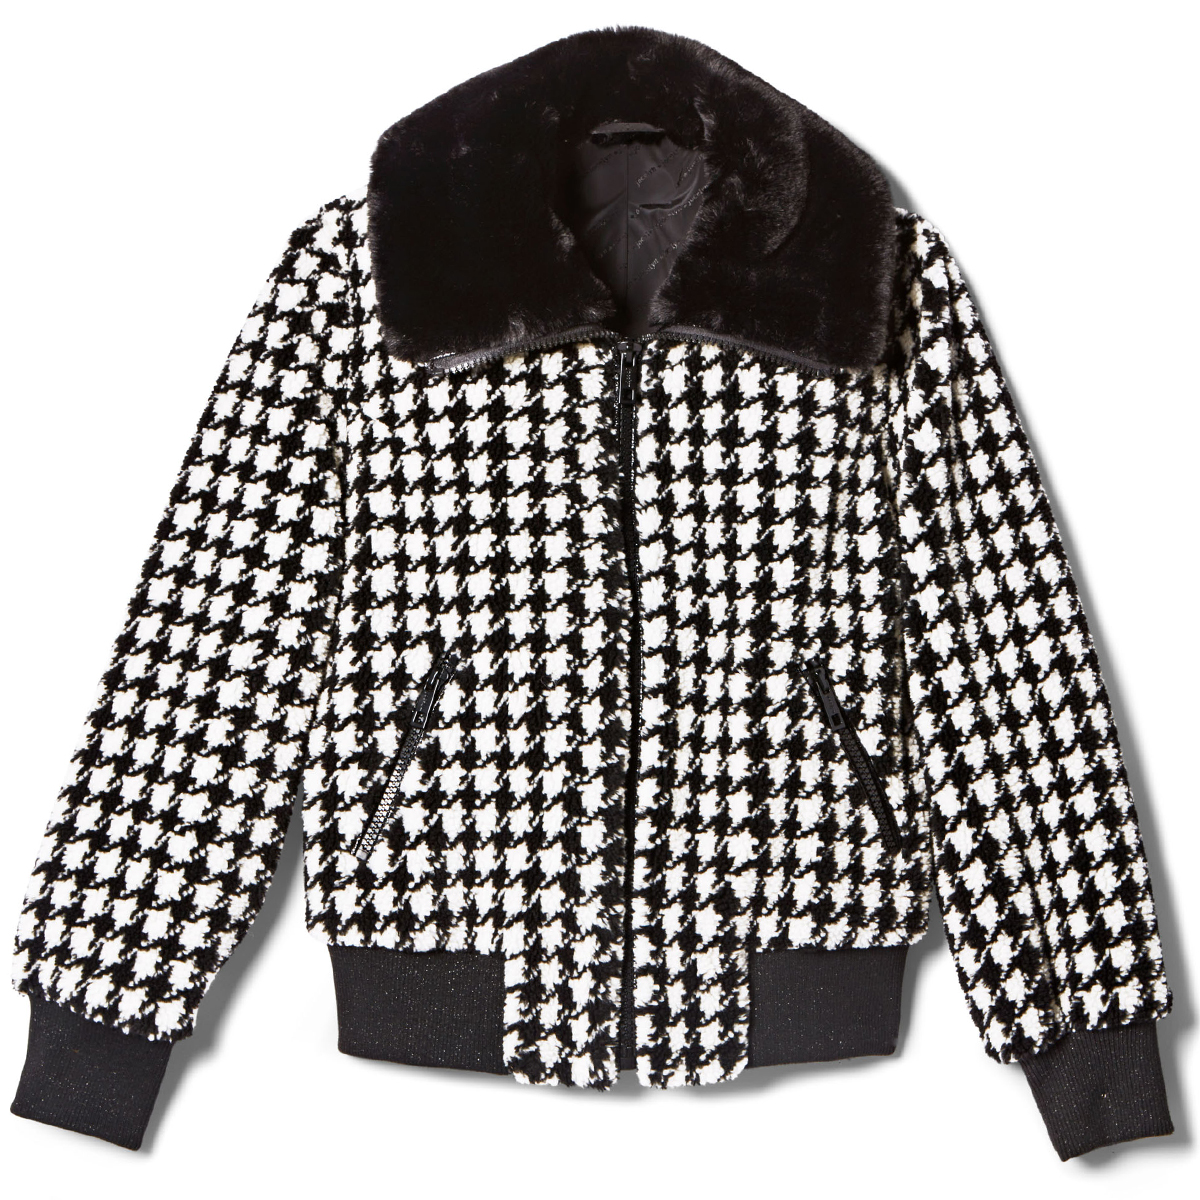 Jocelyn Faux Teddy Bomber with Black Collar and Pockets